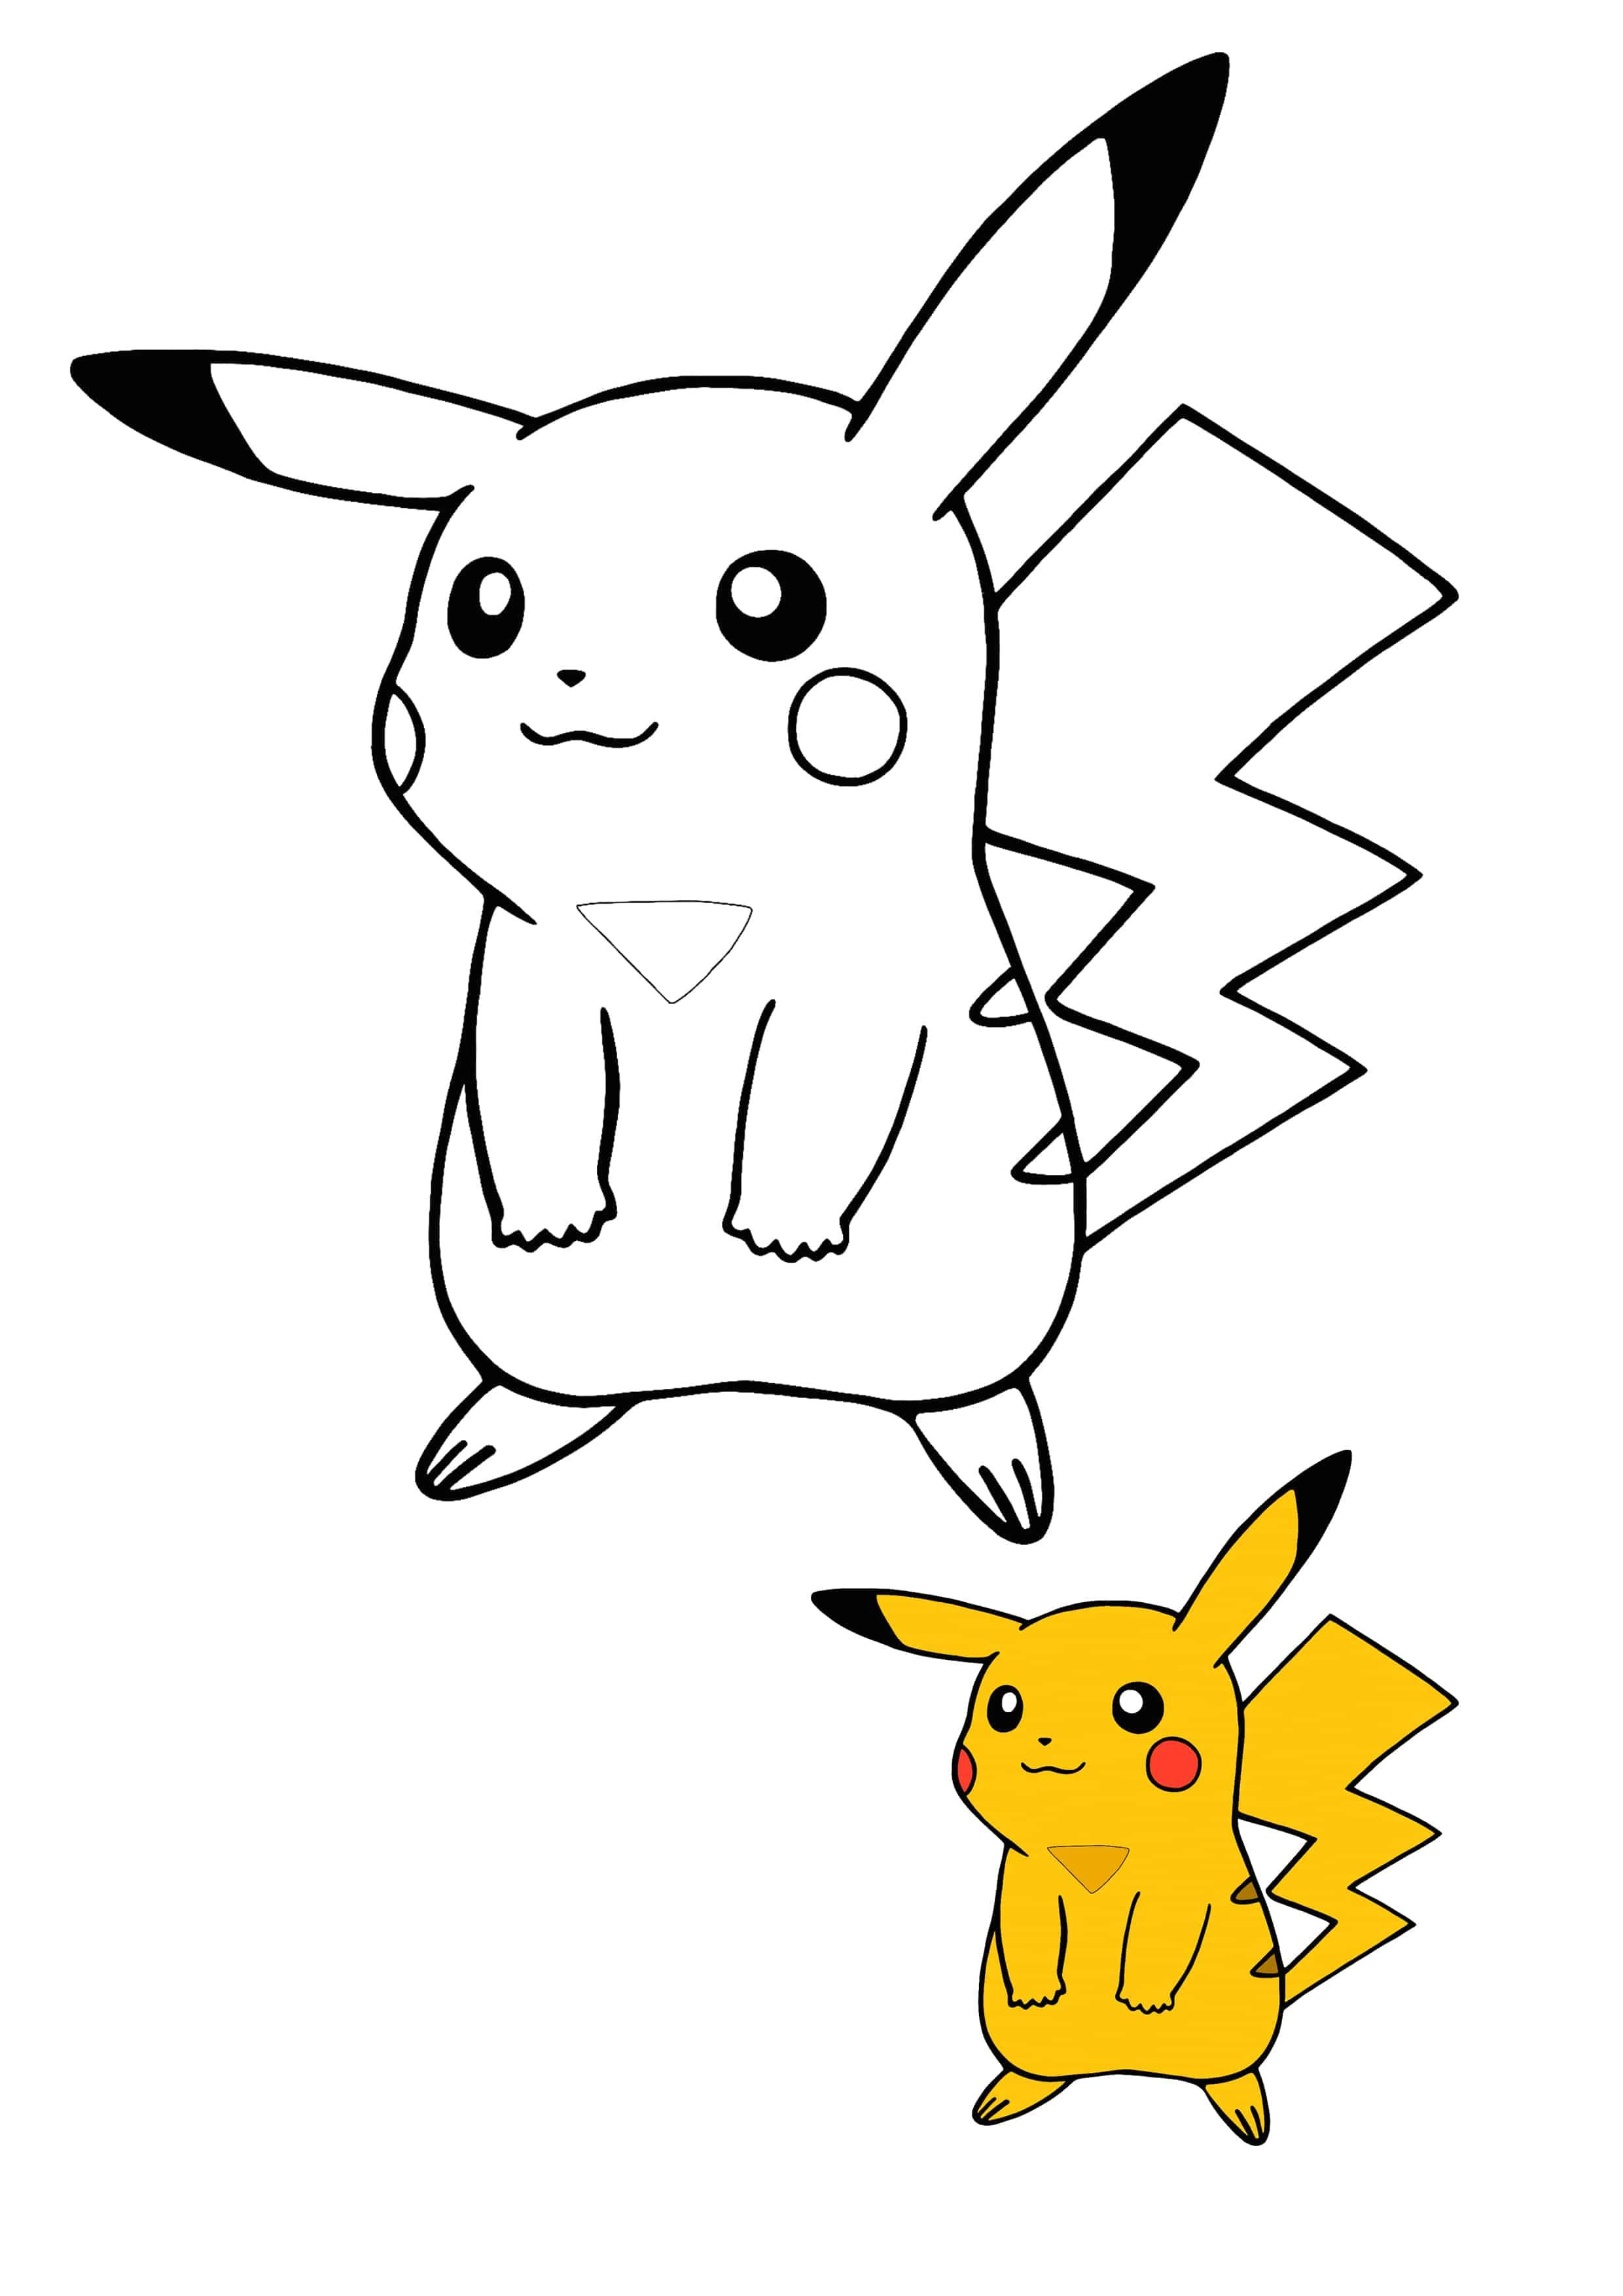 Kawaii Pikachu Coloring Page With Preview Pokemon Coloring Pages Free Printable Coloring Sheets Pikachu Coloring Page